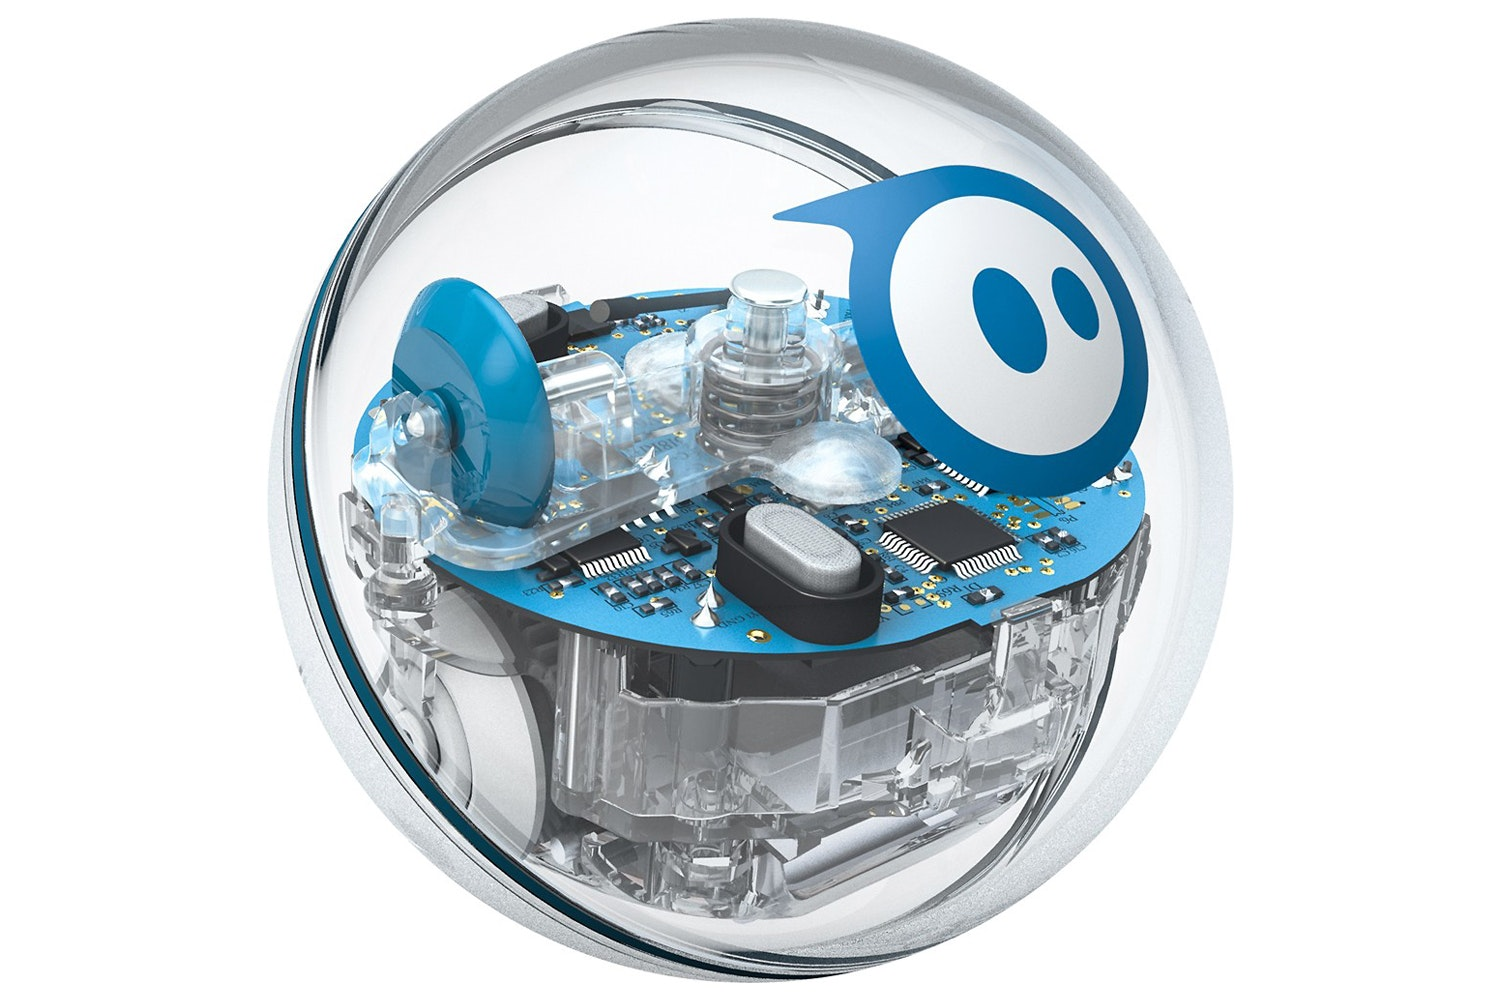 Sphero SPRK+ Robotic Ball